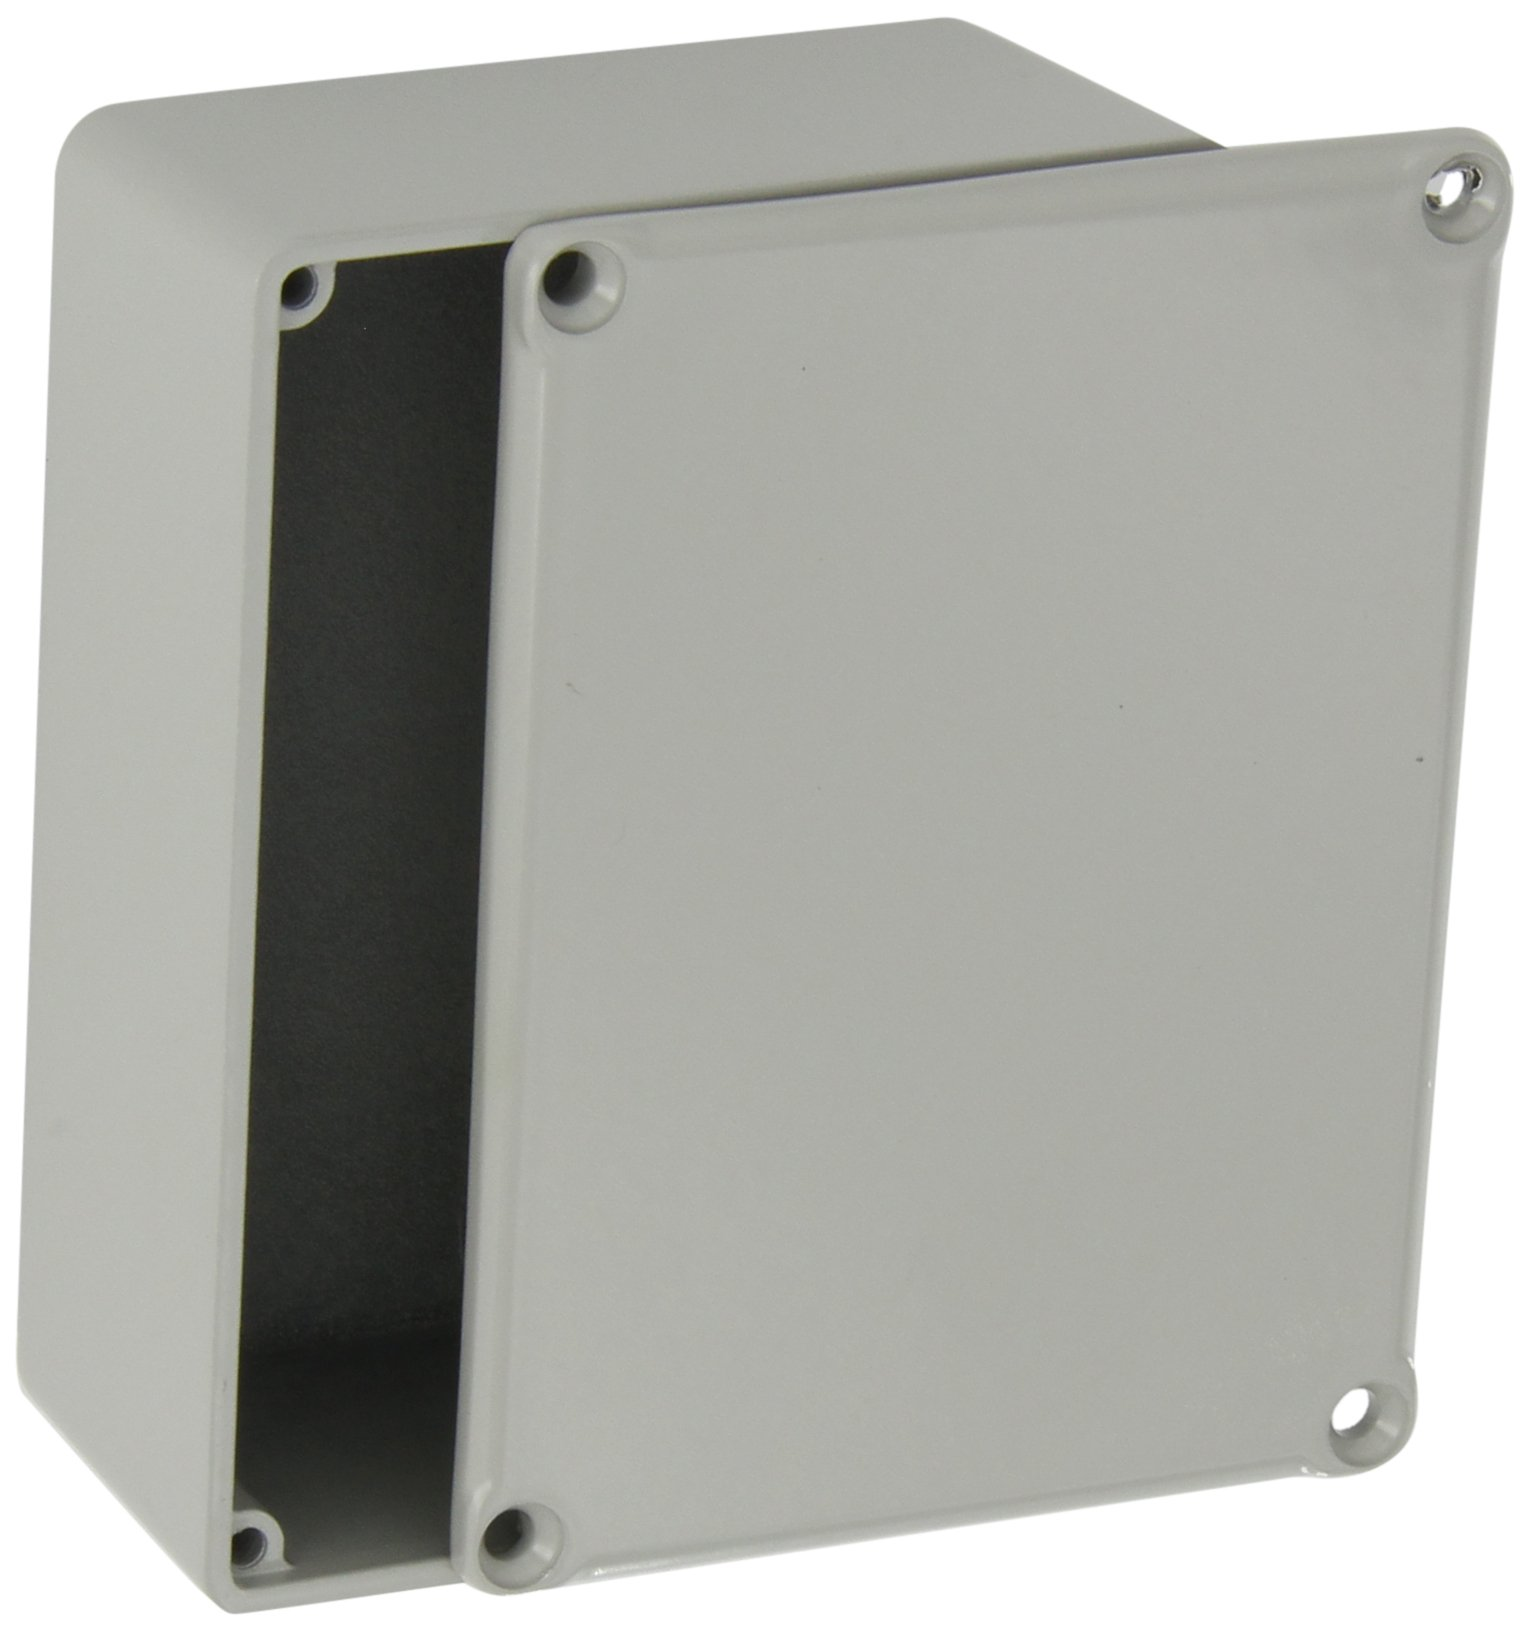 BUD Industries CU-471-G Aluminum Econobox, 4-21/64'' Length x 3-1/4'' Width x 1-3/4'' Height, Gray Painted Finish